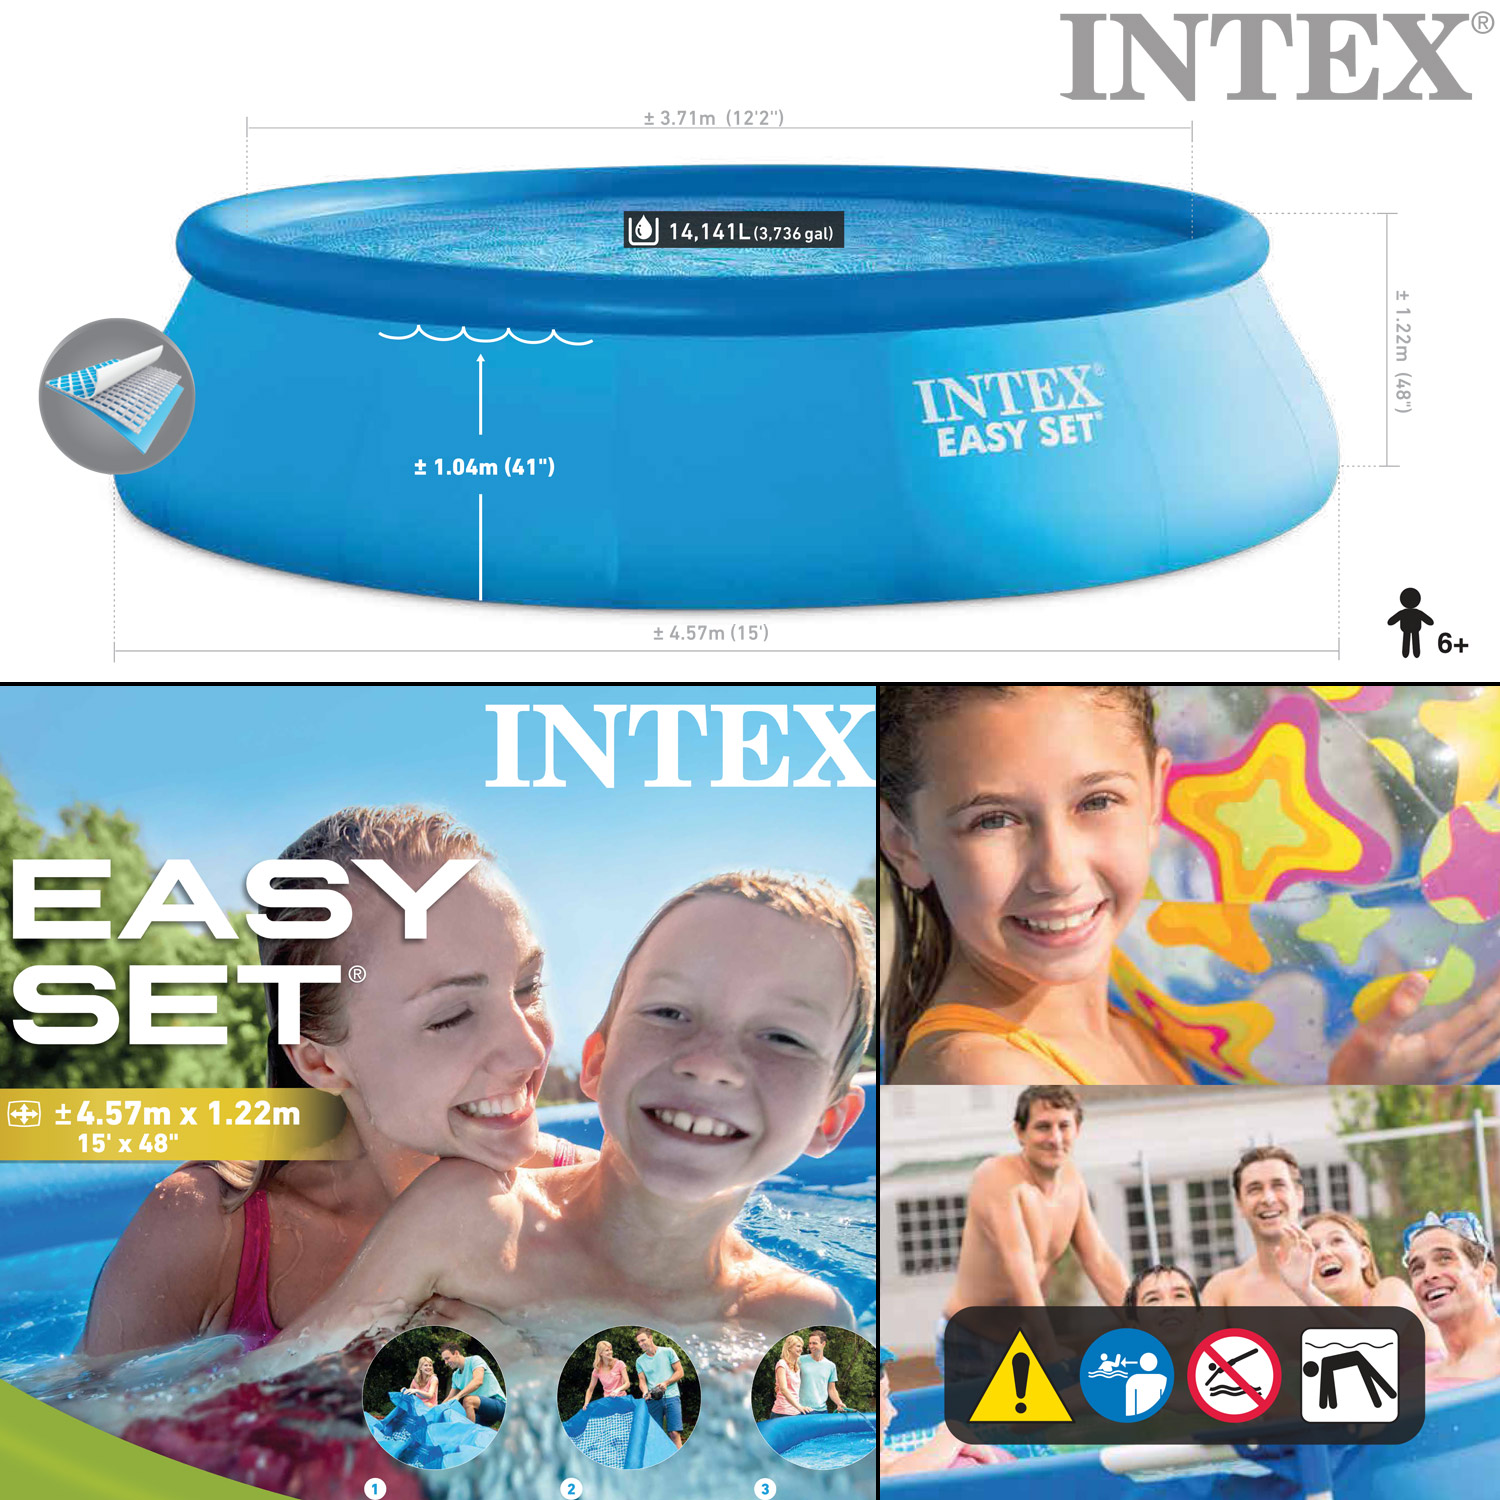 Intex 457x122 komplettset schwimmbecken swimming pool for Garten pool 457x122